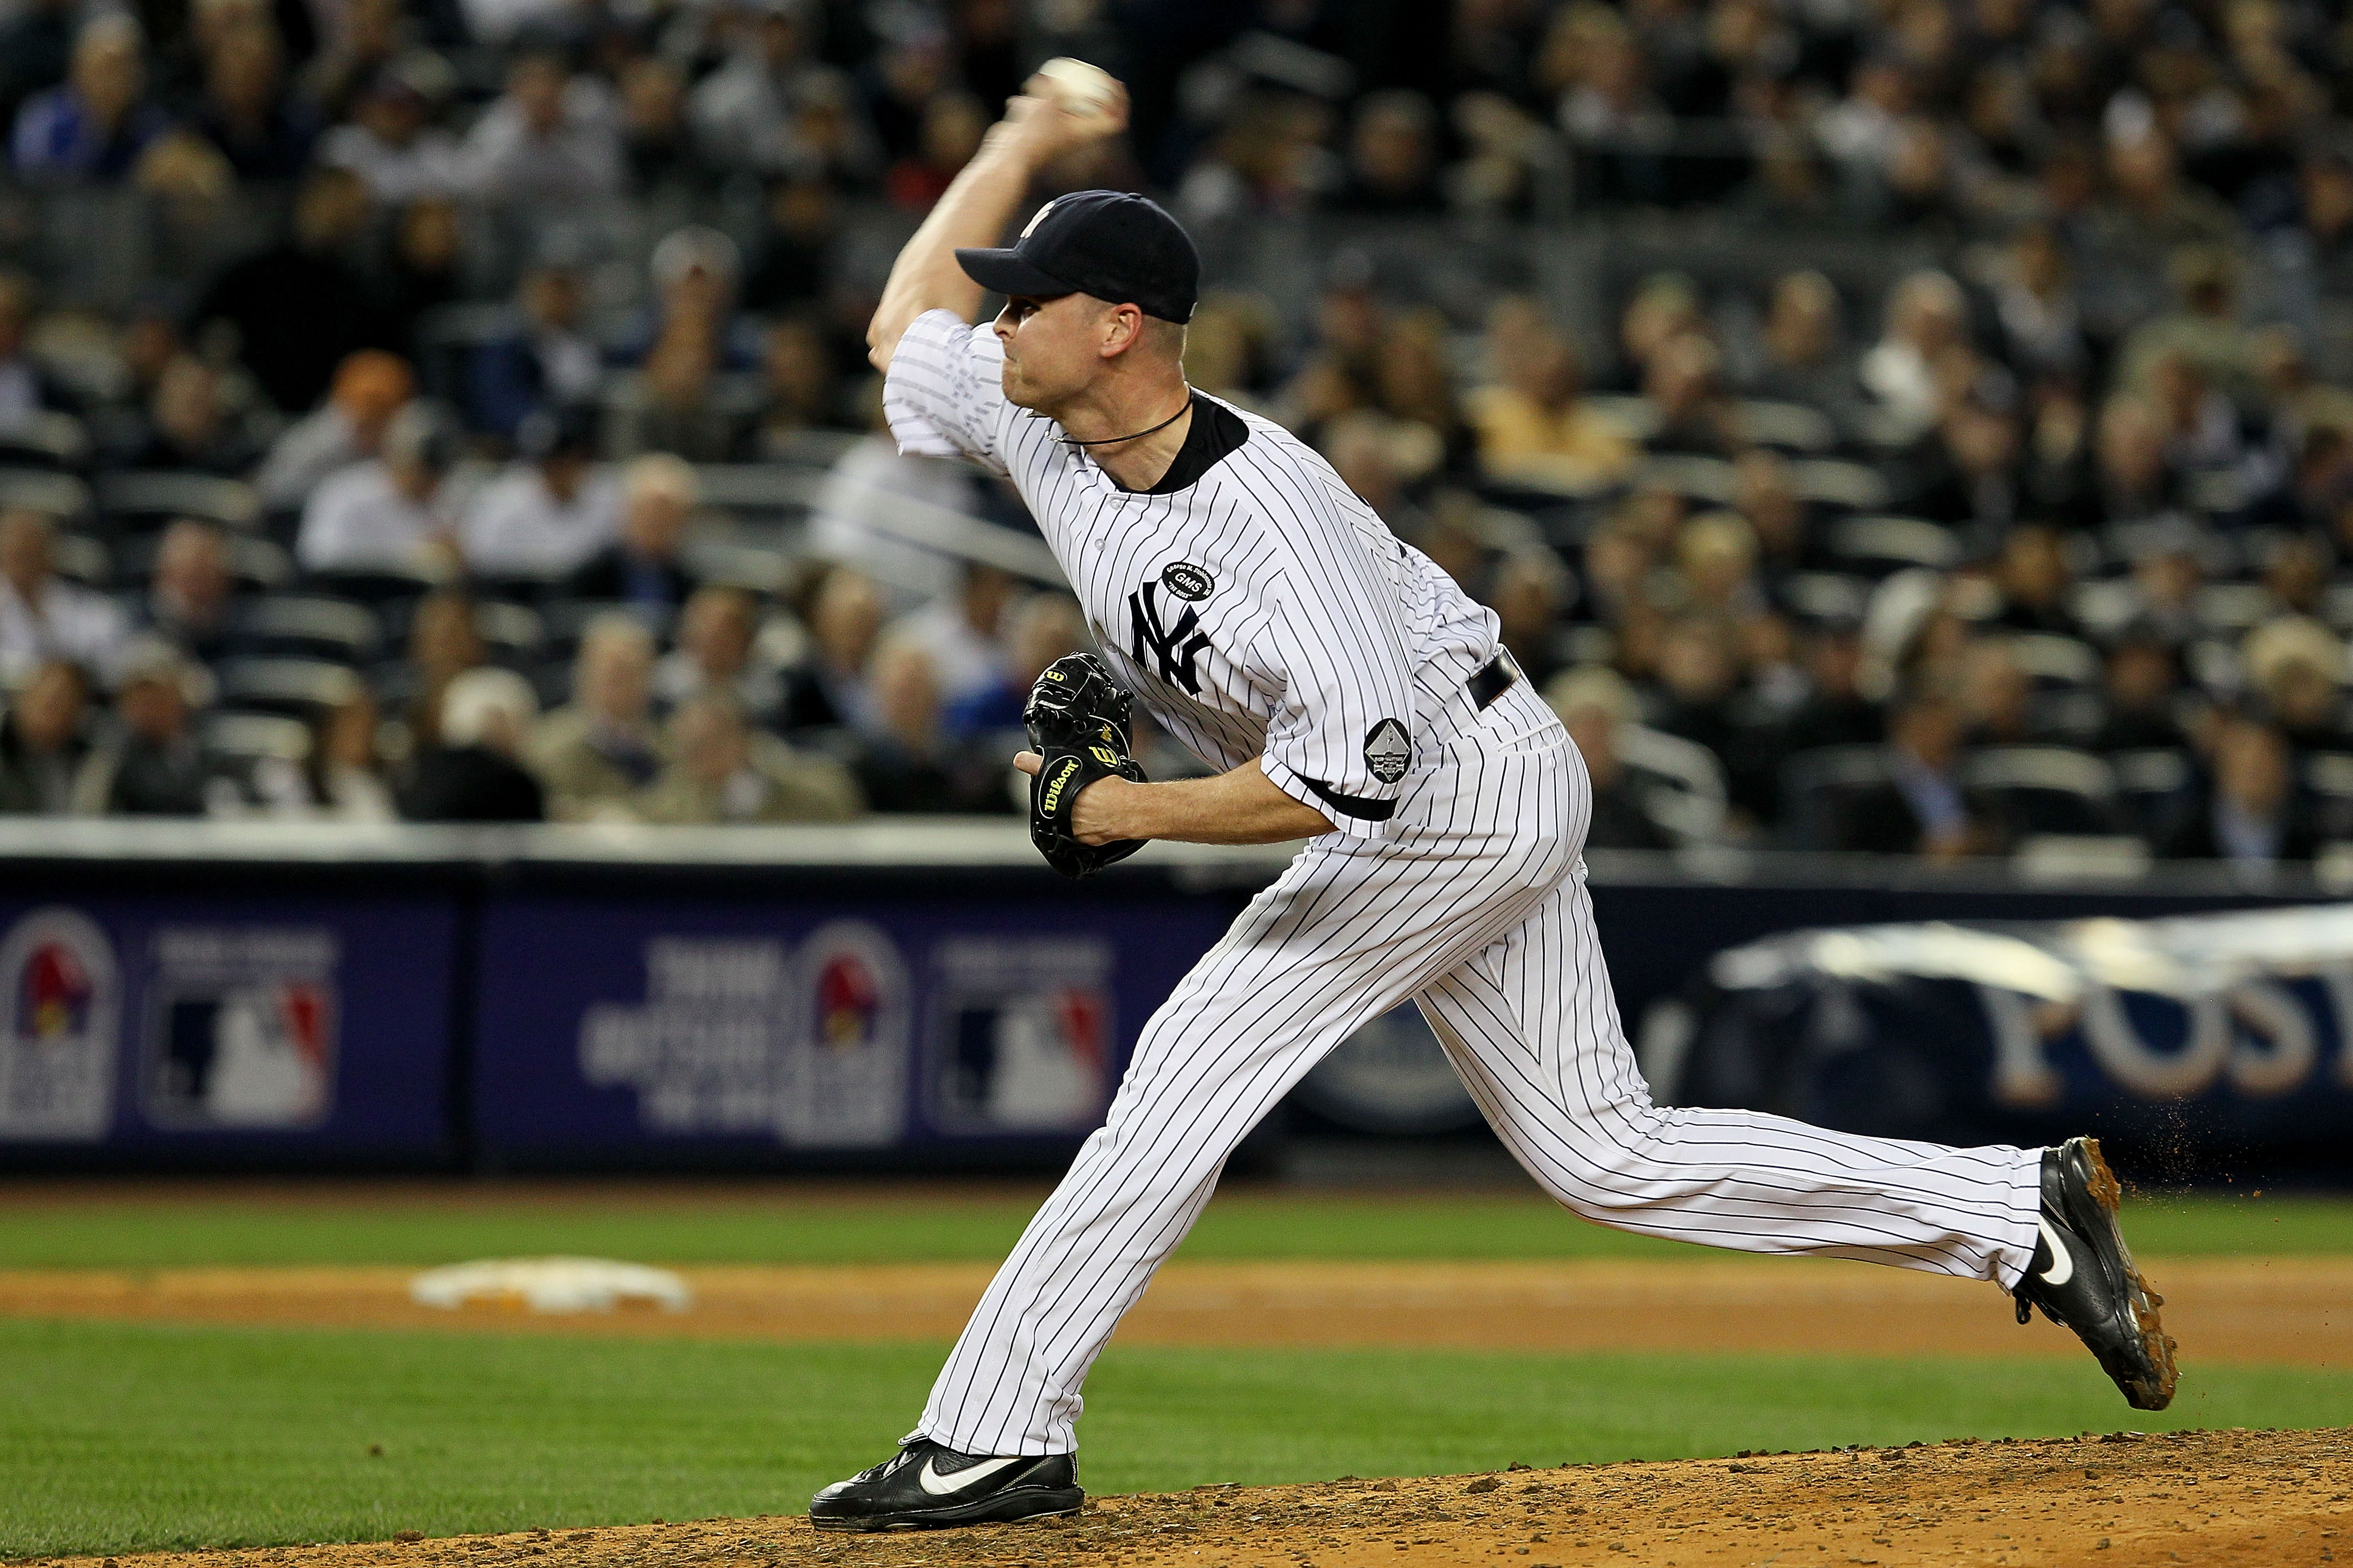 NEW YORK - OCTOBER 20:  Kerry Wood #39 of the New York Yankees pitches against the Texas Rangers in Game Five of the ALCS during the 2010 MLB Playoffs at Yankee Stadium on October 20, 2010 in the Bronx borough of New York City.  (Photo by Jim McIsaac/Gett